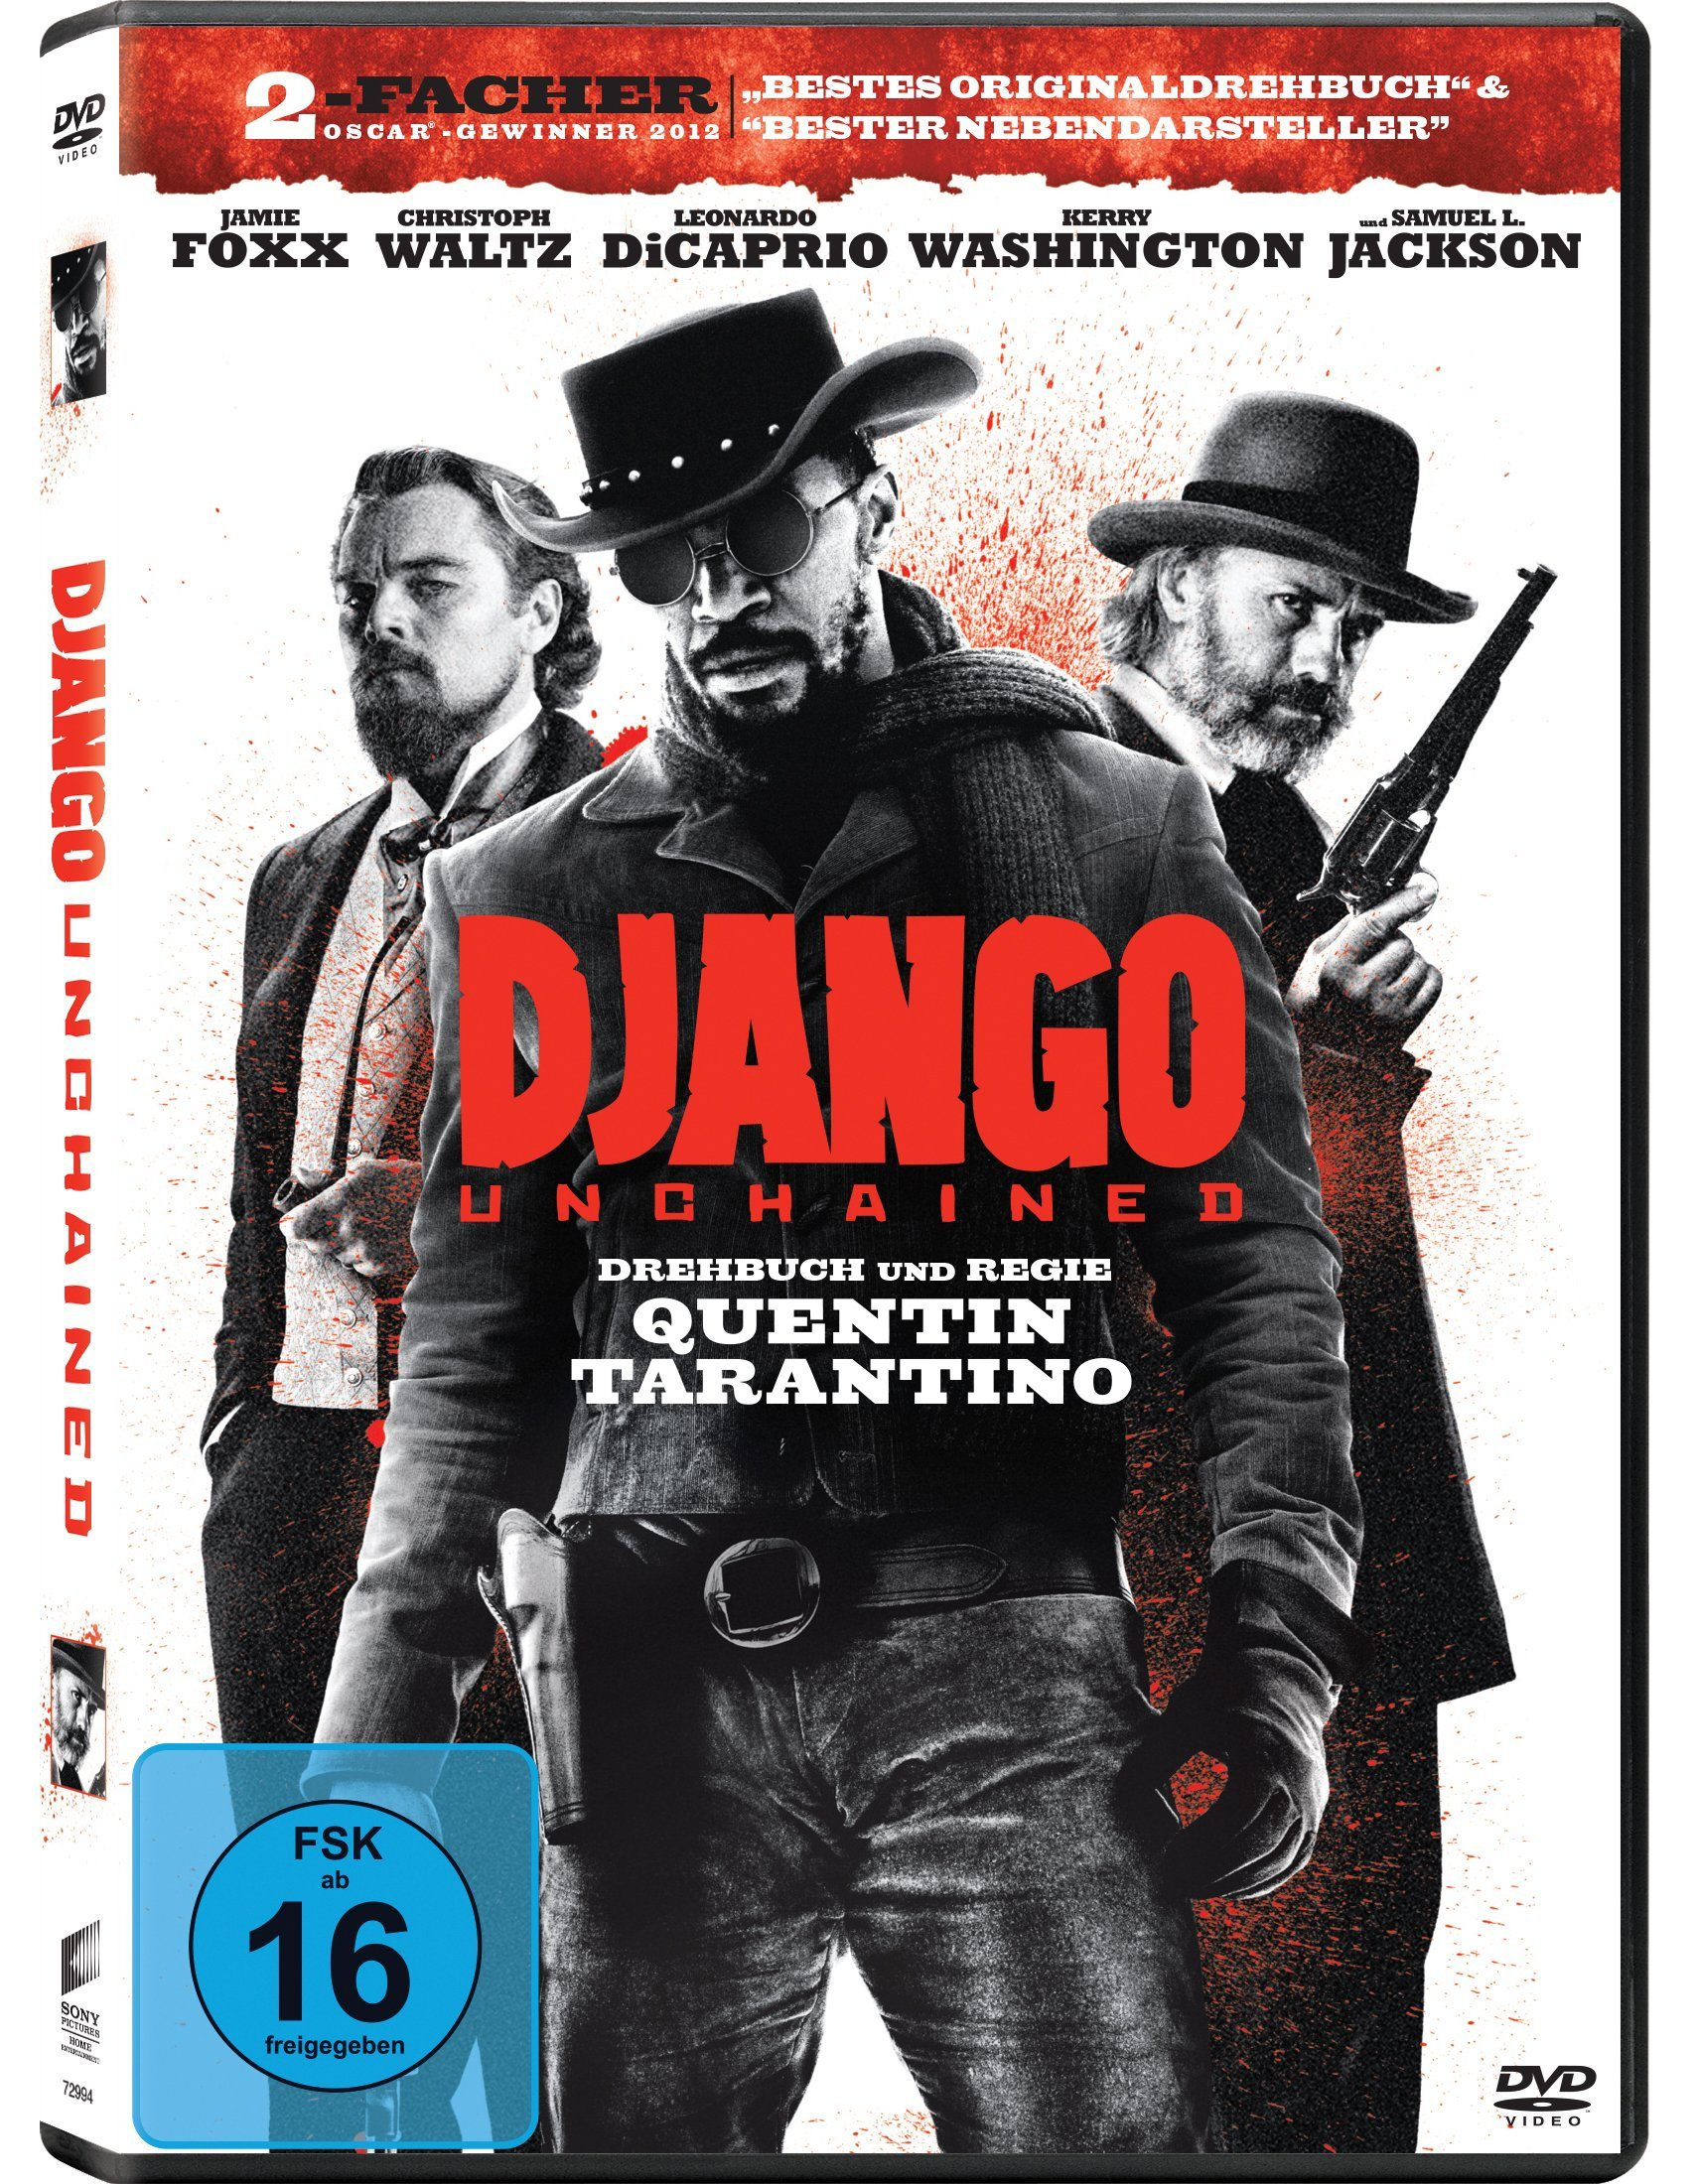 Sony Pictures DVD »Django Unchained«